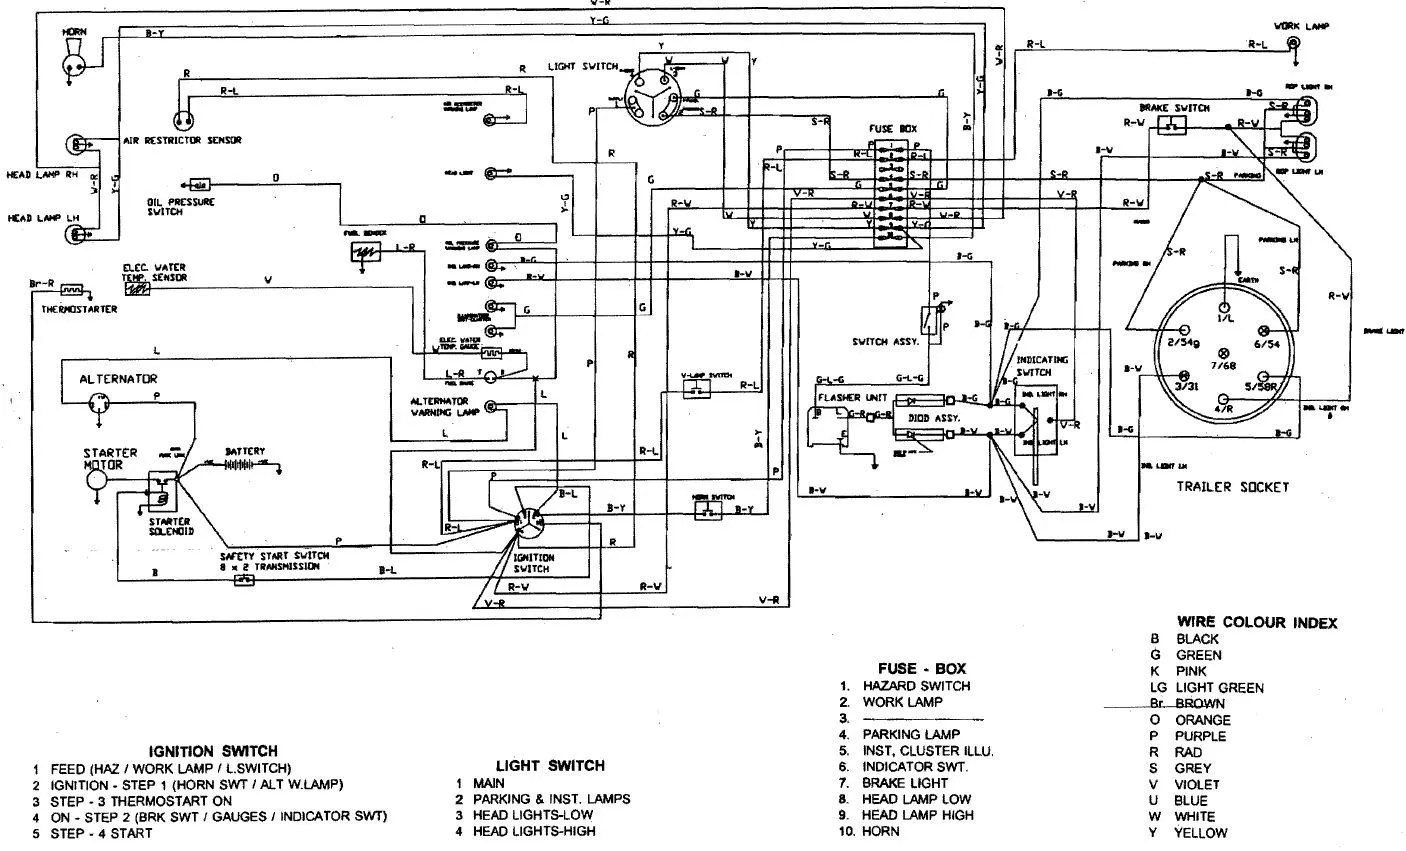 4000 tractor ignition wiring diagram attached is a wiring diagram